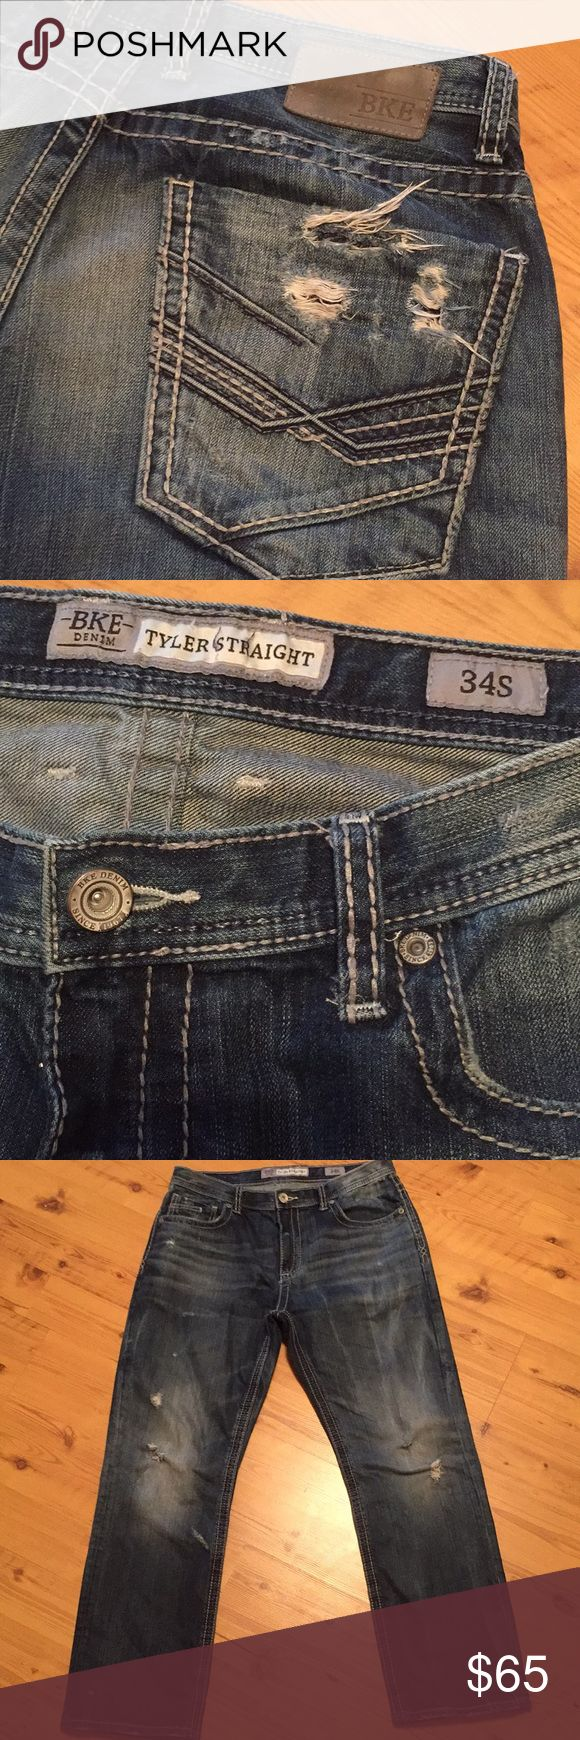 Men's BKE Tyler Relaxed Straight Jeans Men's bke tyler relaxed straight jeans size 34Wx30L. Gently used still in same condition as purchased. BKE Jeans Relaxed